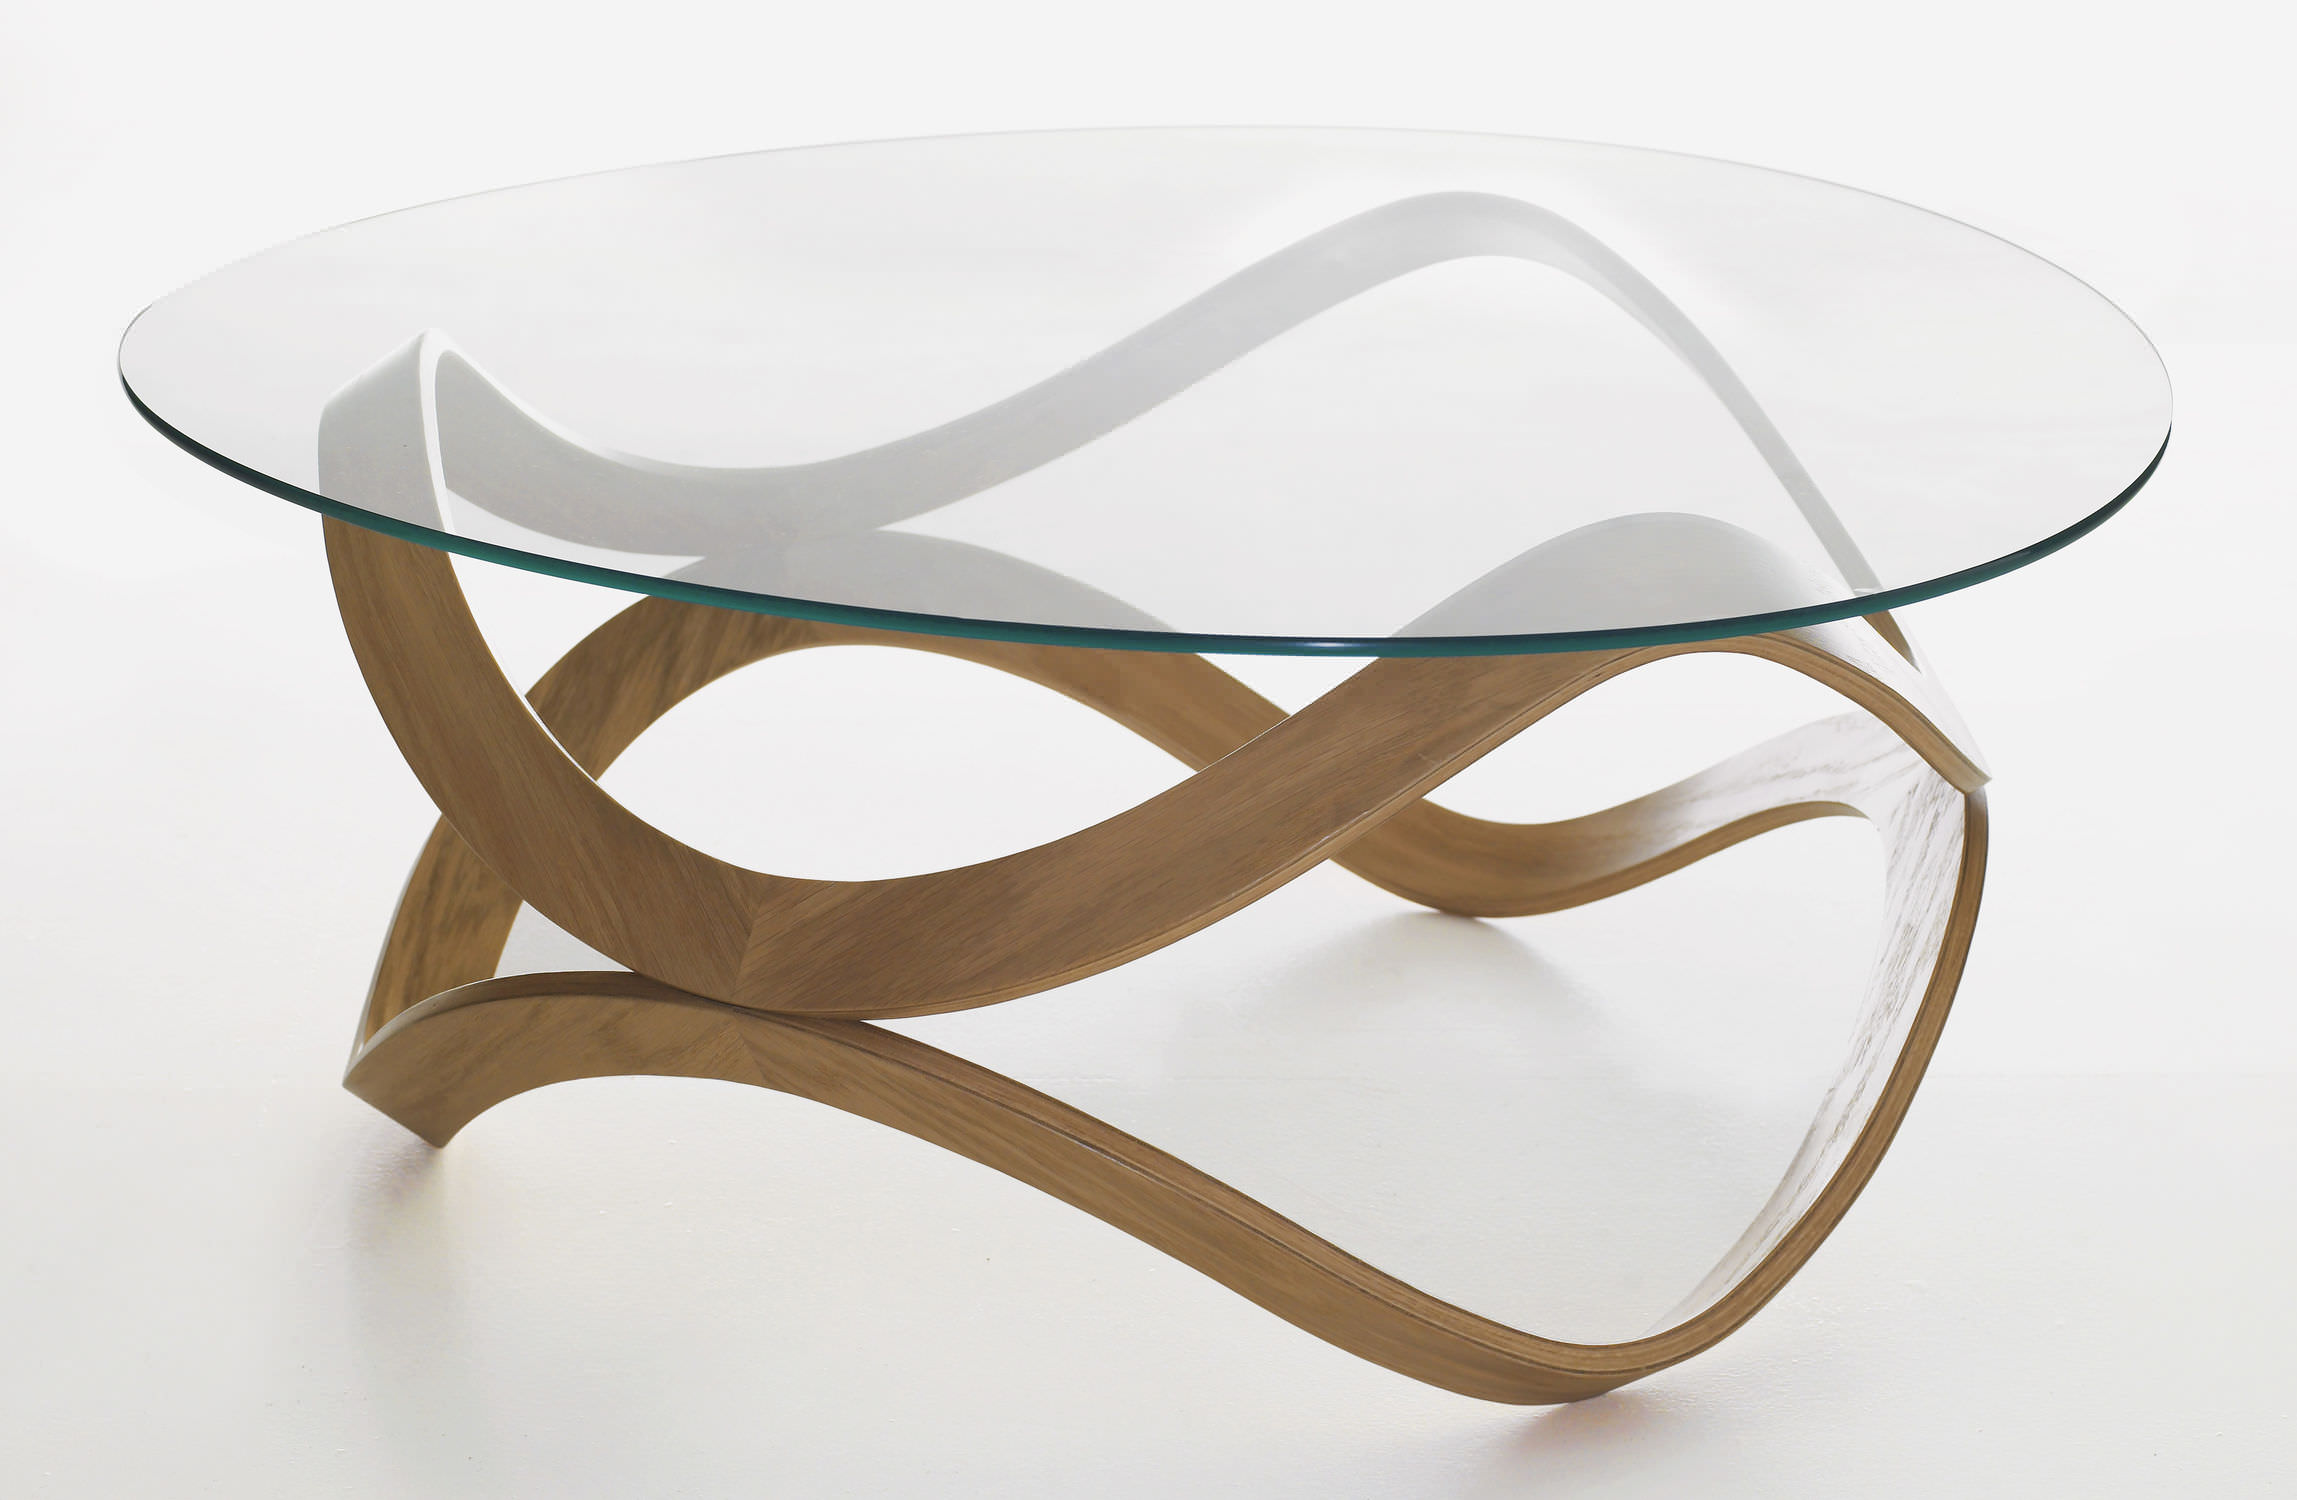 Contemporary Coffee Tables Glass Custom Contemporary Coffee Table  Glass  Oak  Ash  Newtond.sunaga . Inspiration